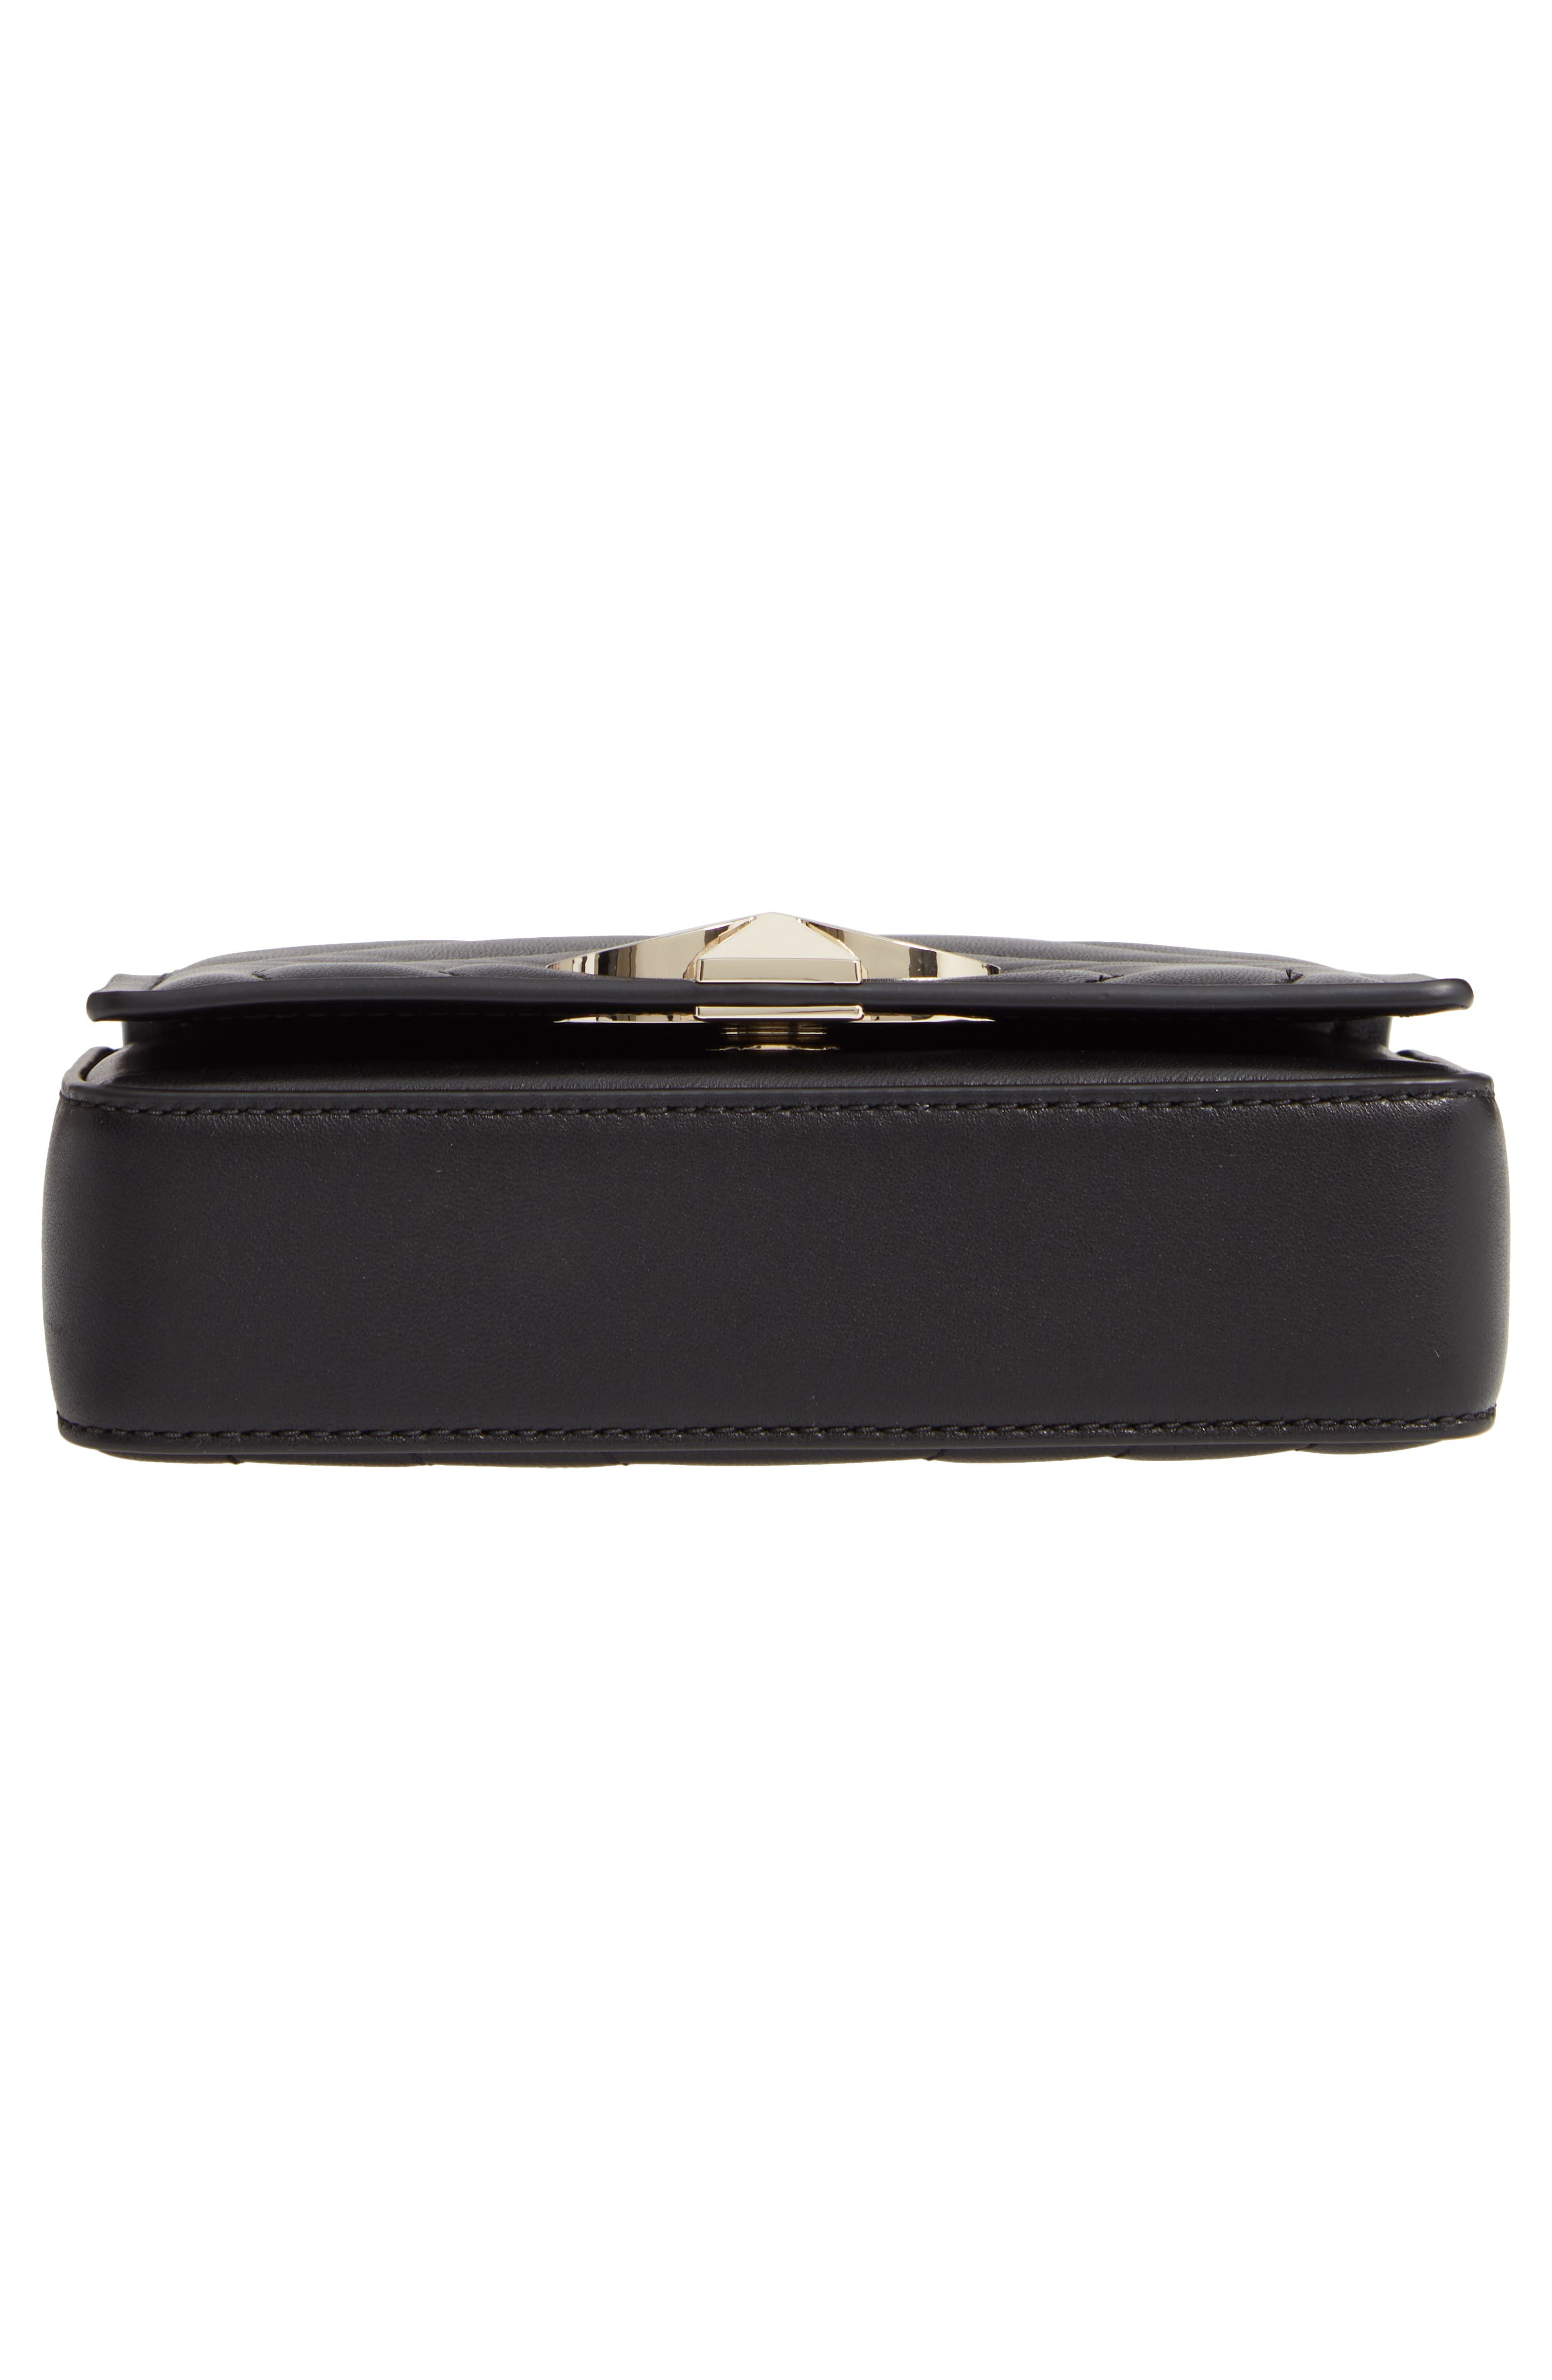 KATE SPADE NEW YORK, small amelia leather shoulder bag, Alternate thumbnail 7, color, BLACK